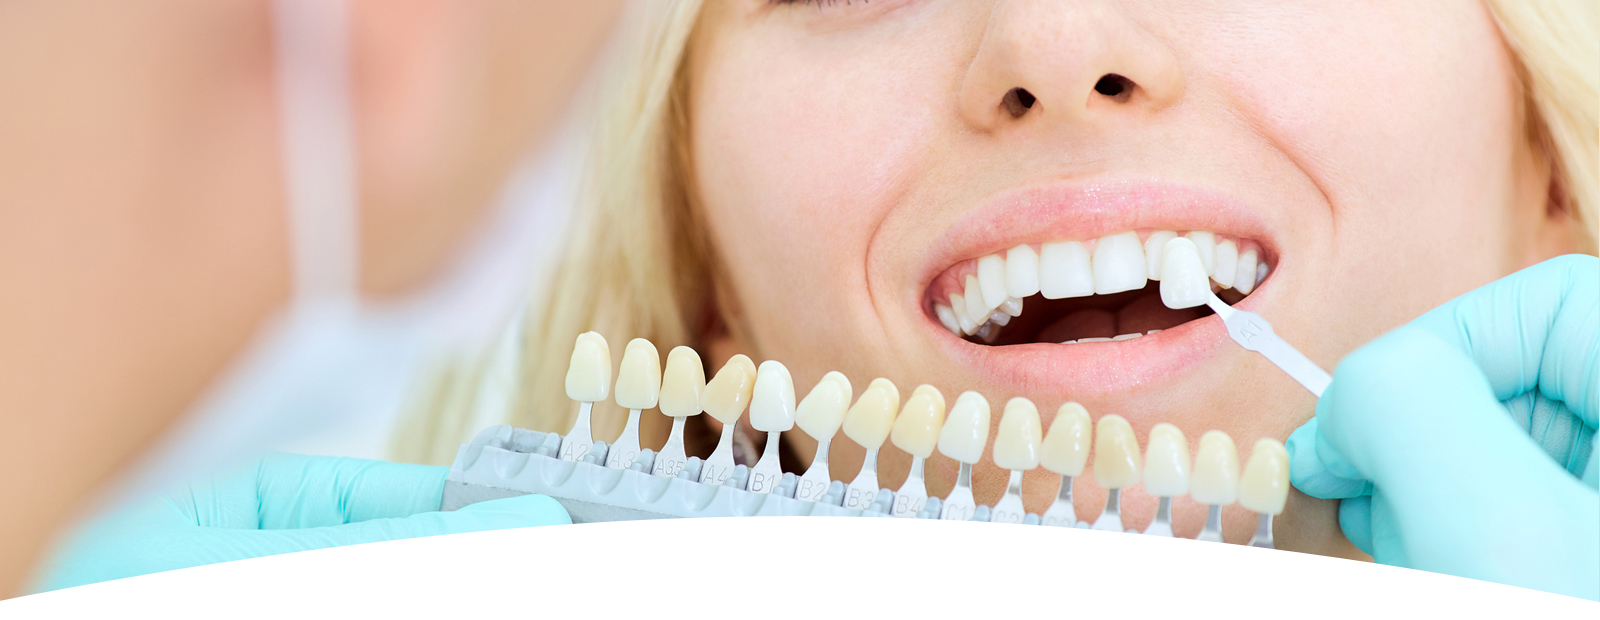 Woman teeth whitening concept